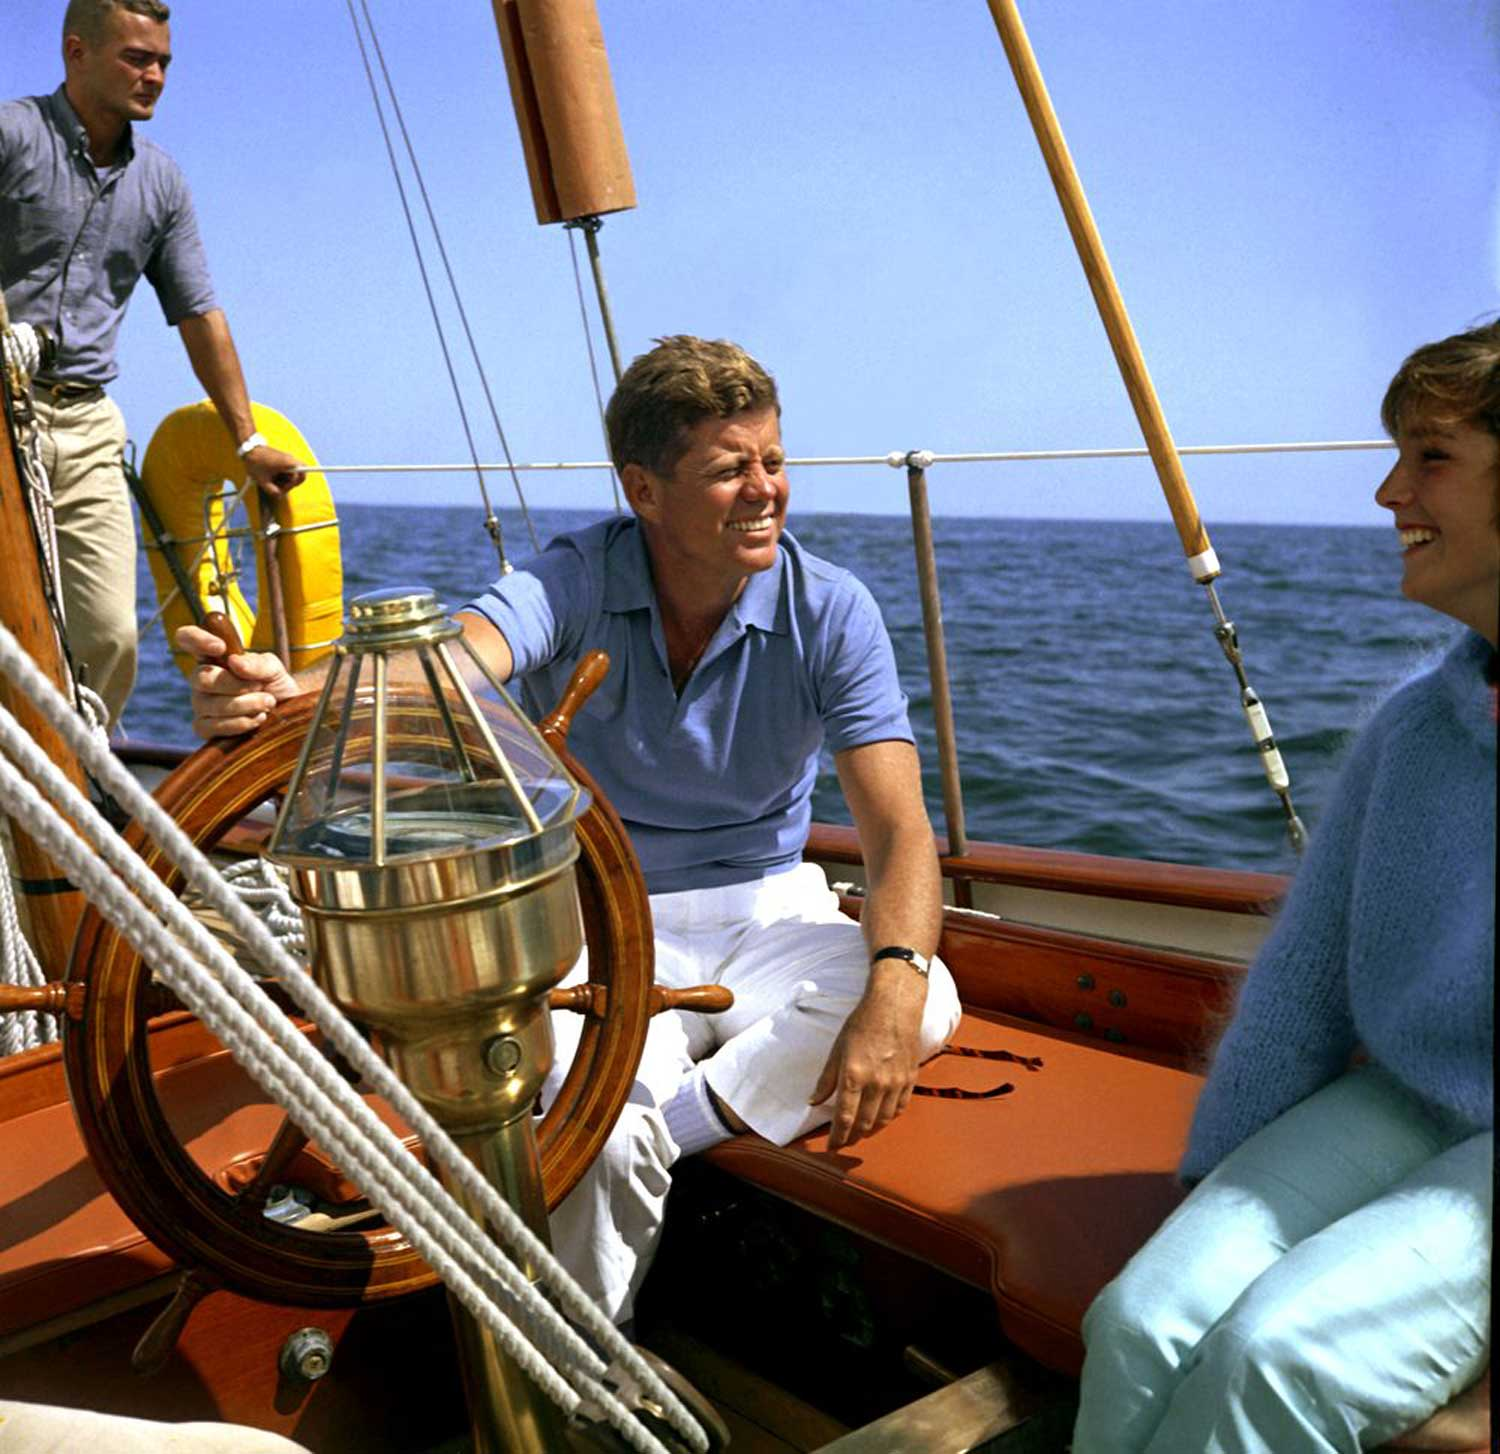 JFK began competitive sailing in his youth. The president often snuck away for a bit of solitude on the Honey Fitz, his 92-foot power yacht on the Potomac. But being a talented sailor, his favorite was the Manitou, a 62-foot sailing yacht he first spotted as a young senator.